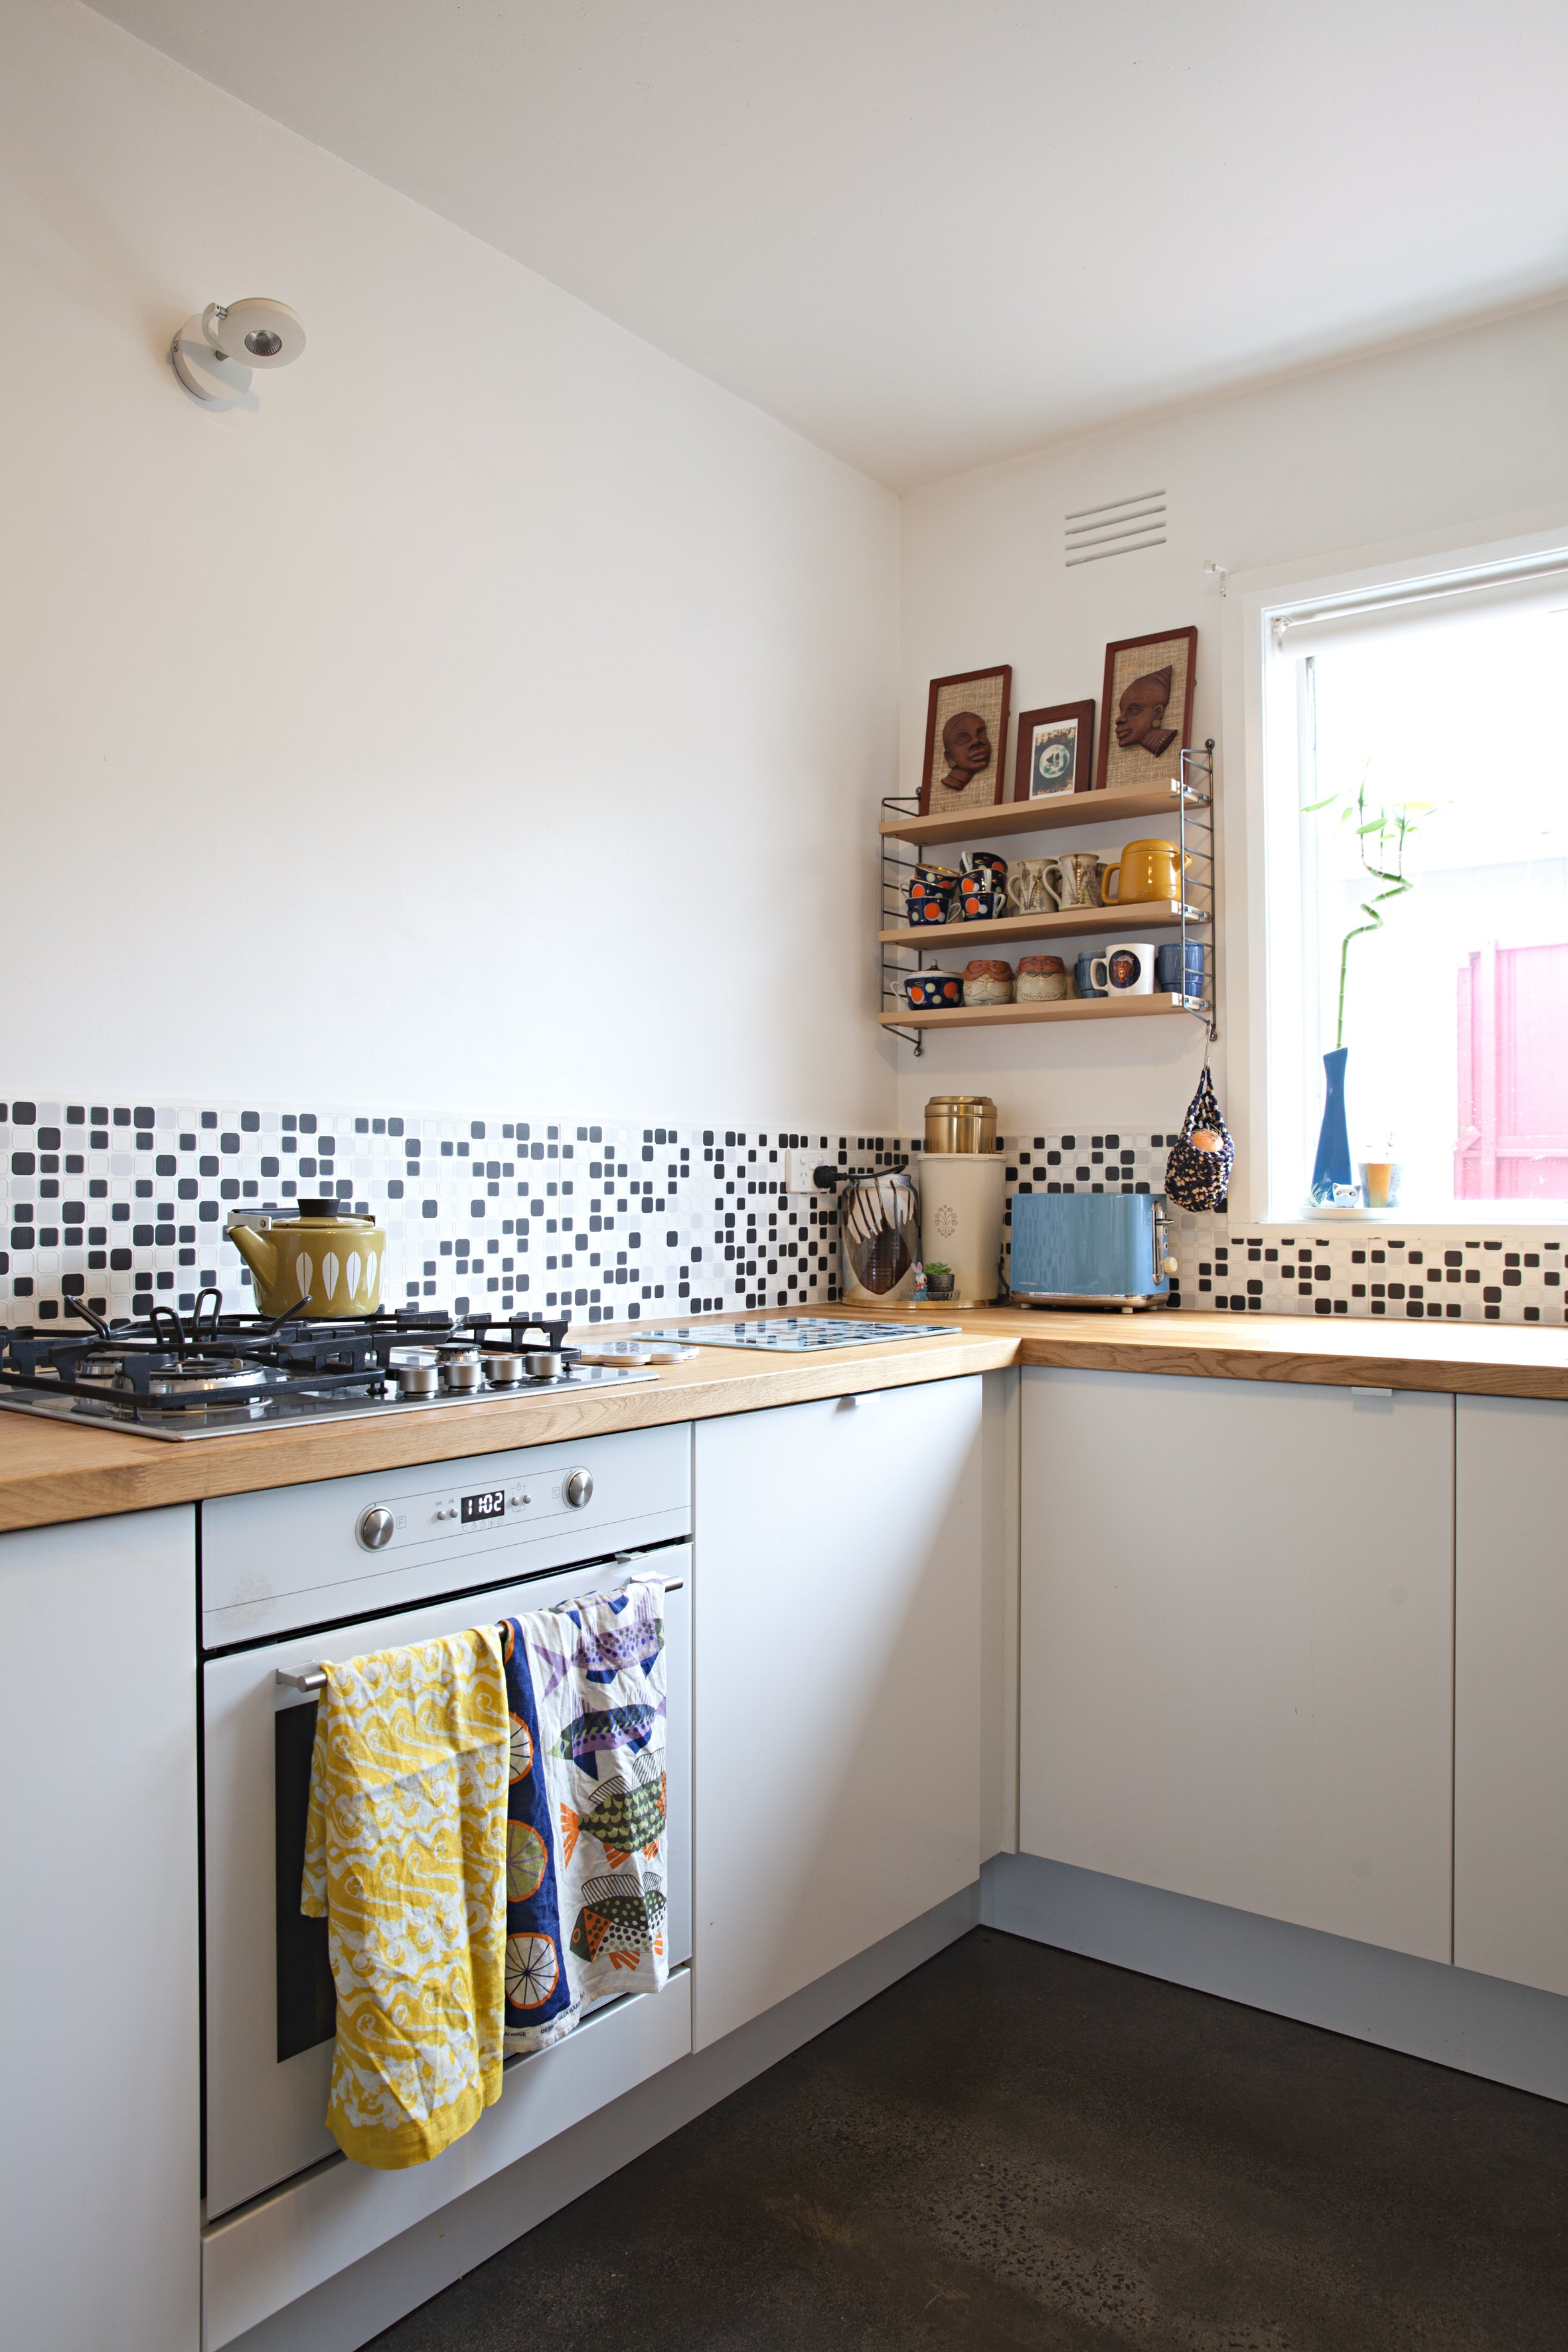 Buyers Guide to Choosing Cabinets for a Modern Kitchen ...